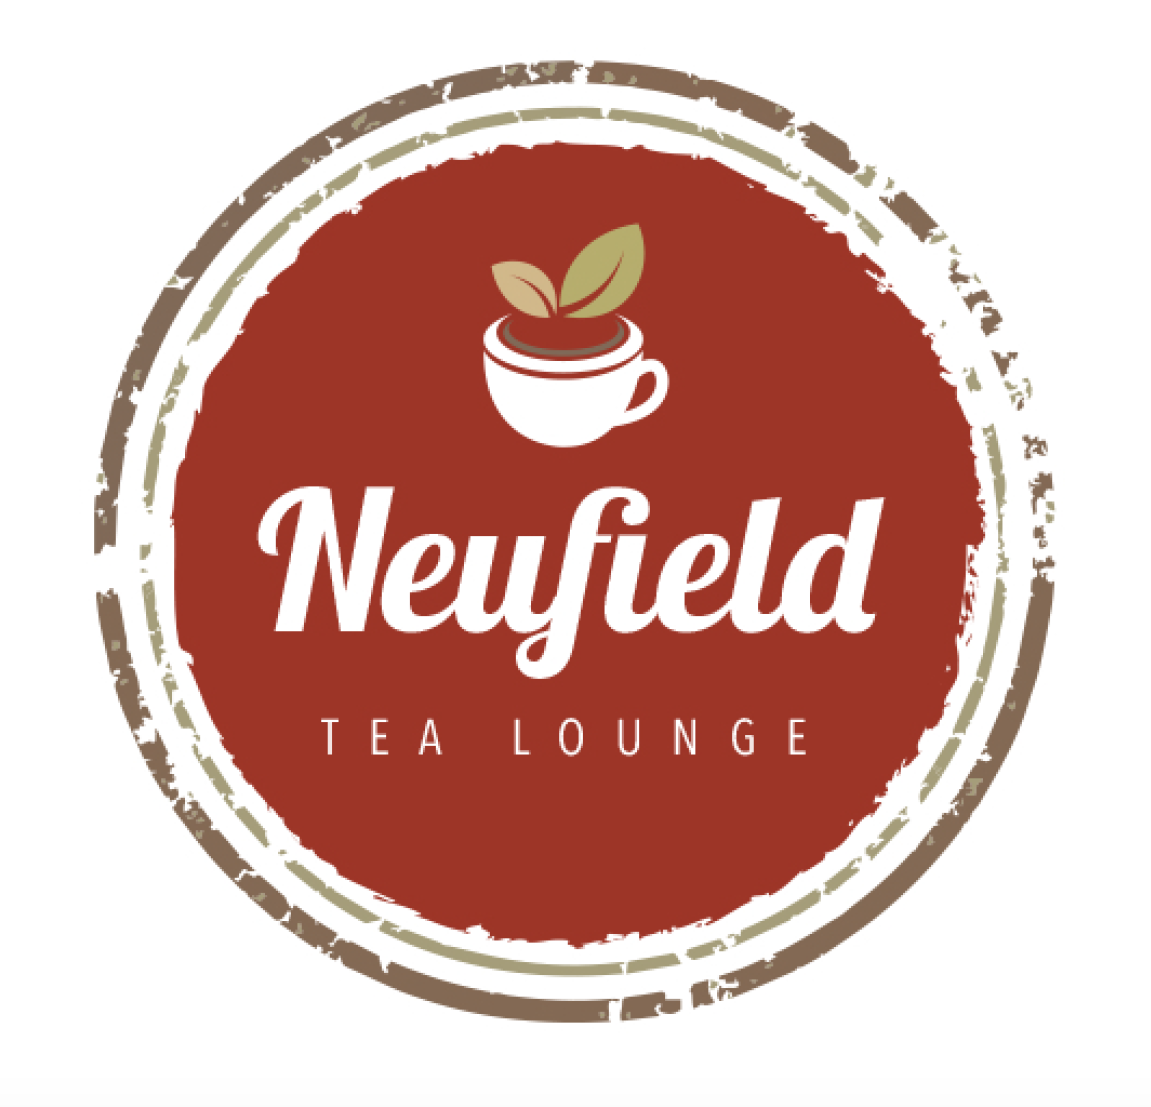 Neufield Tea Lounge logo